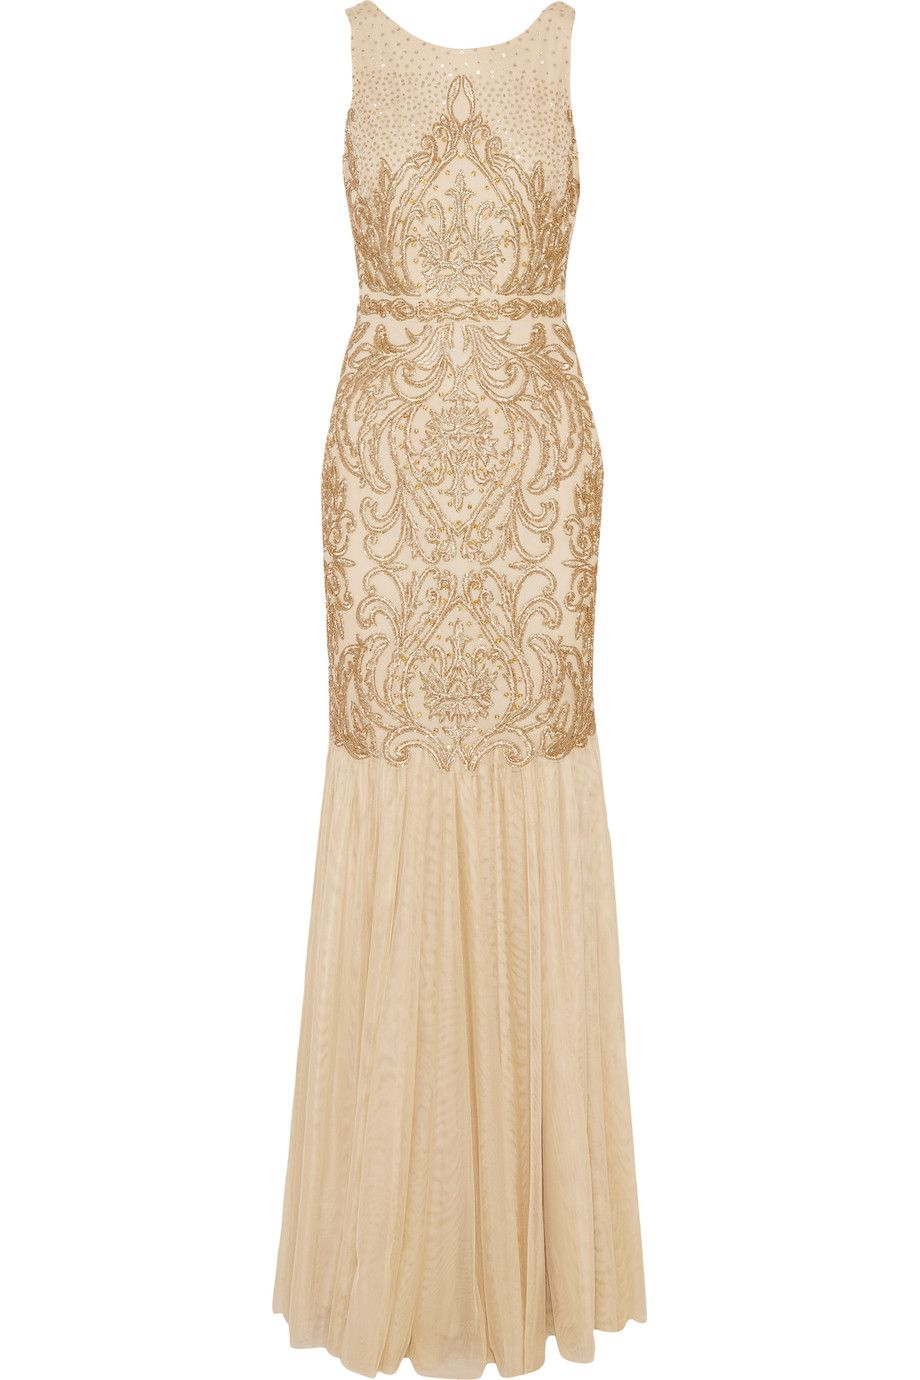 Shop on-sale Badgley Mischka Embellished tulle gown . Browse other ...